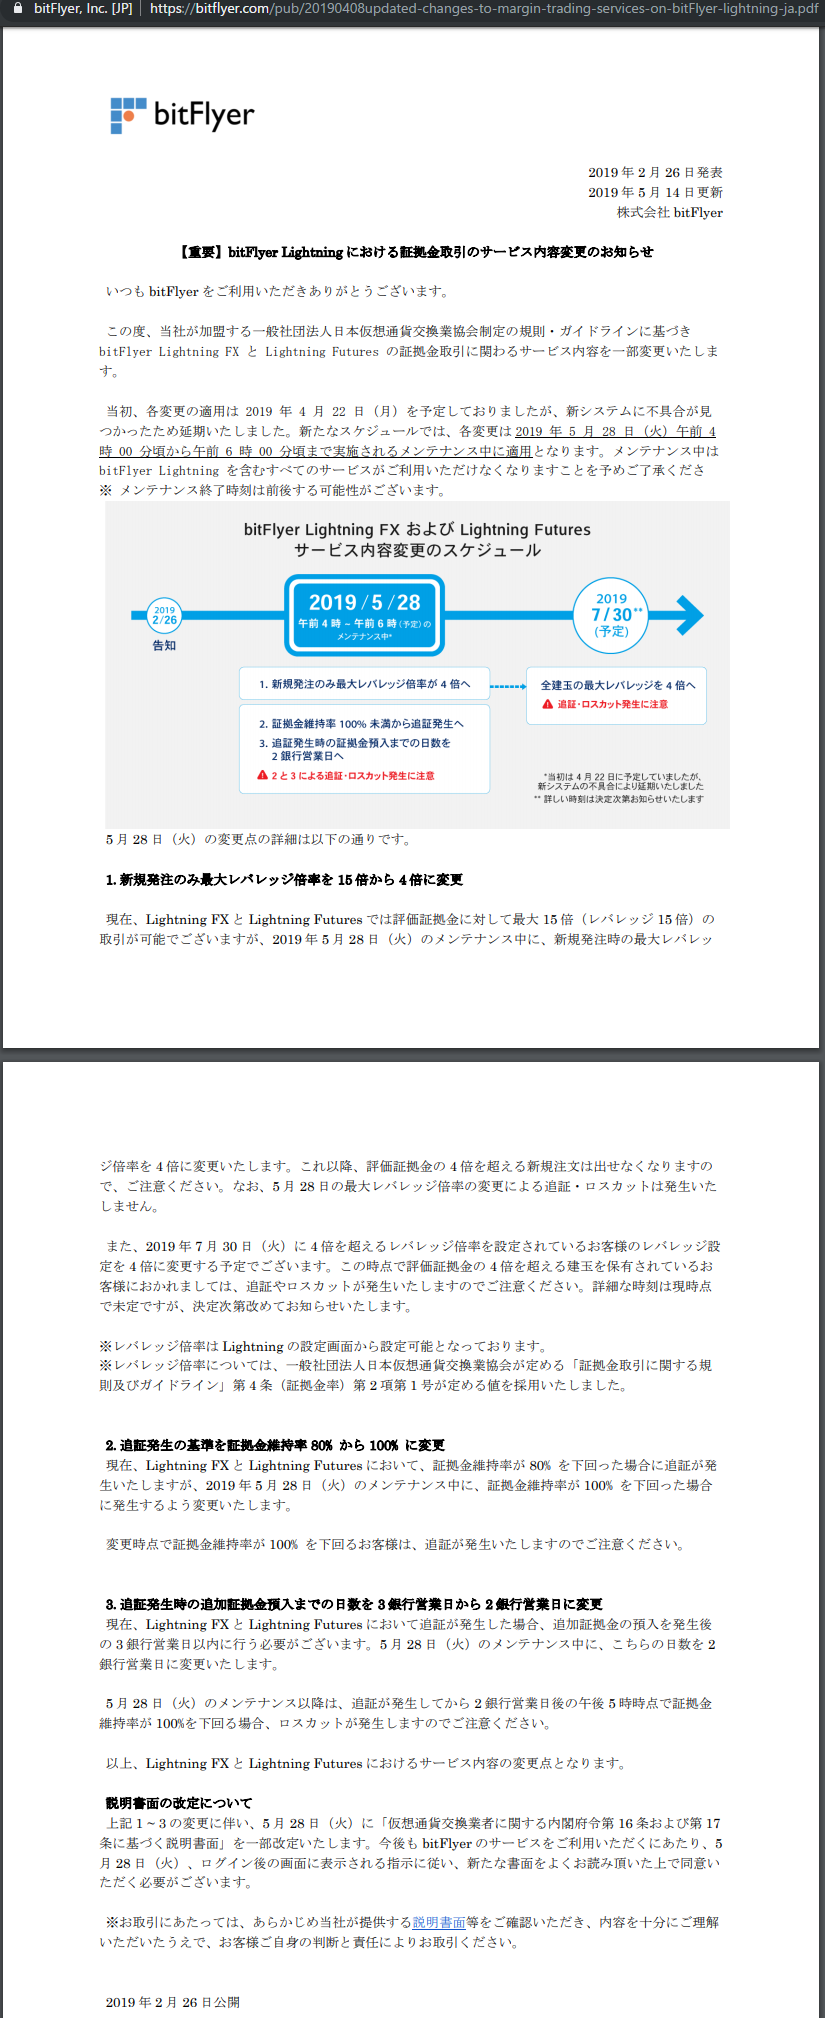 bitFlyerLightning(FXBTCJPY)でレバレッジ15倍の新規注文が出せるのは2019年5月28日(火)朝3時59分まで! https://bitflyer.com/pub/20190408updated-changes-to-margin-trading-services-on-bitFlyer-lightning-ja.pdf